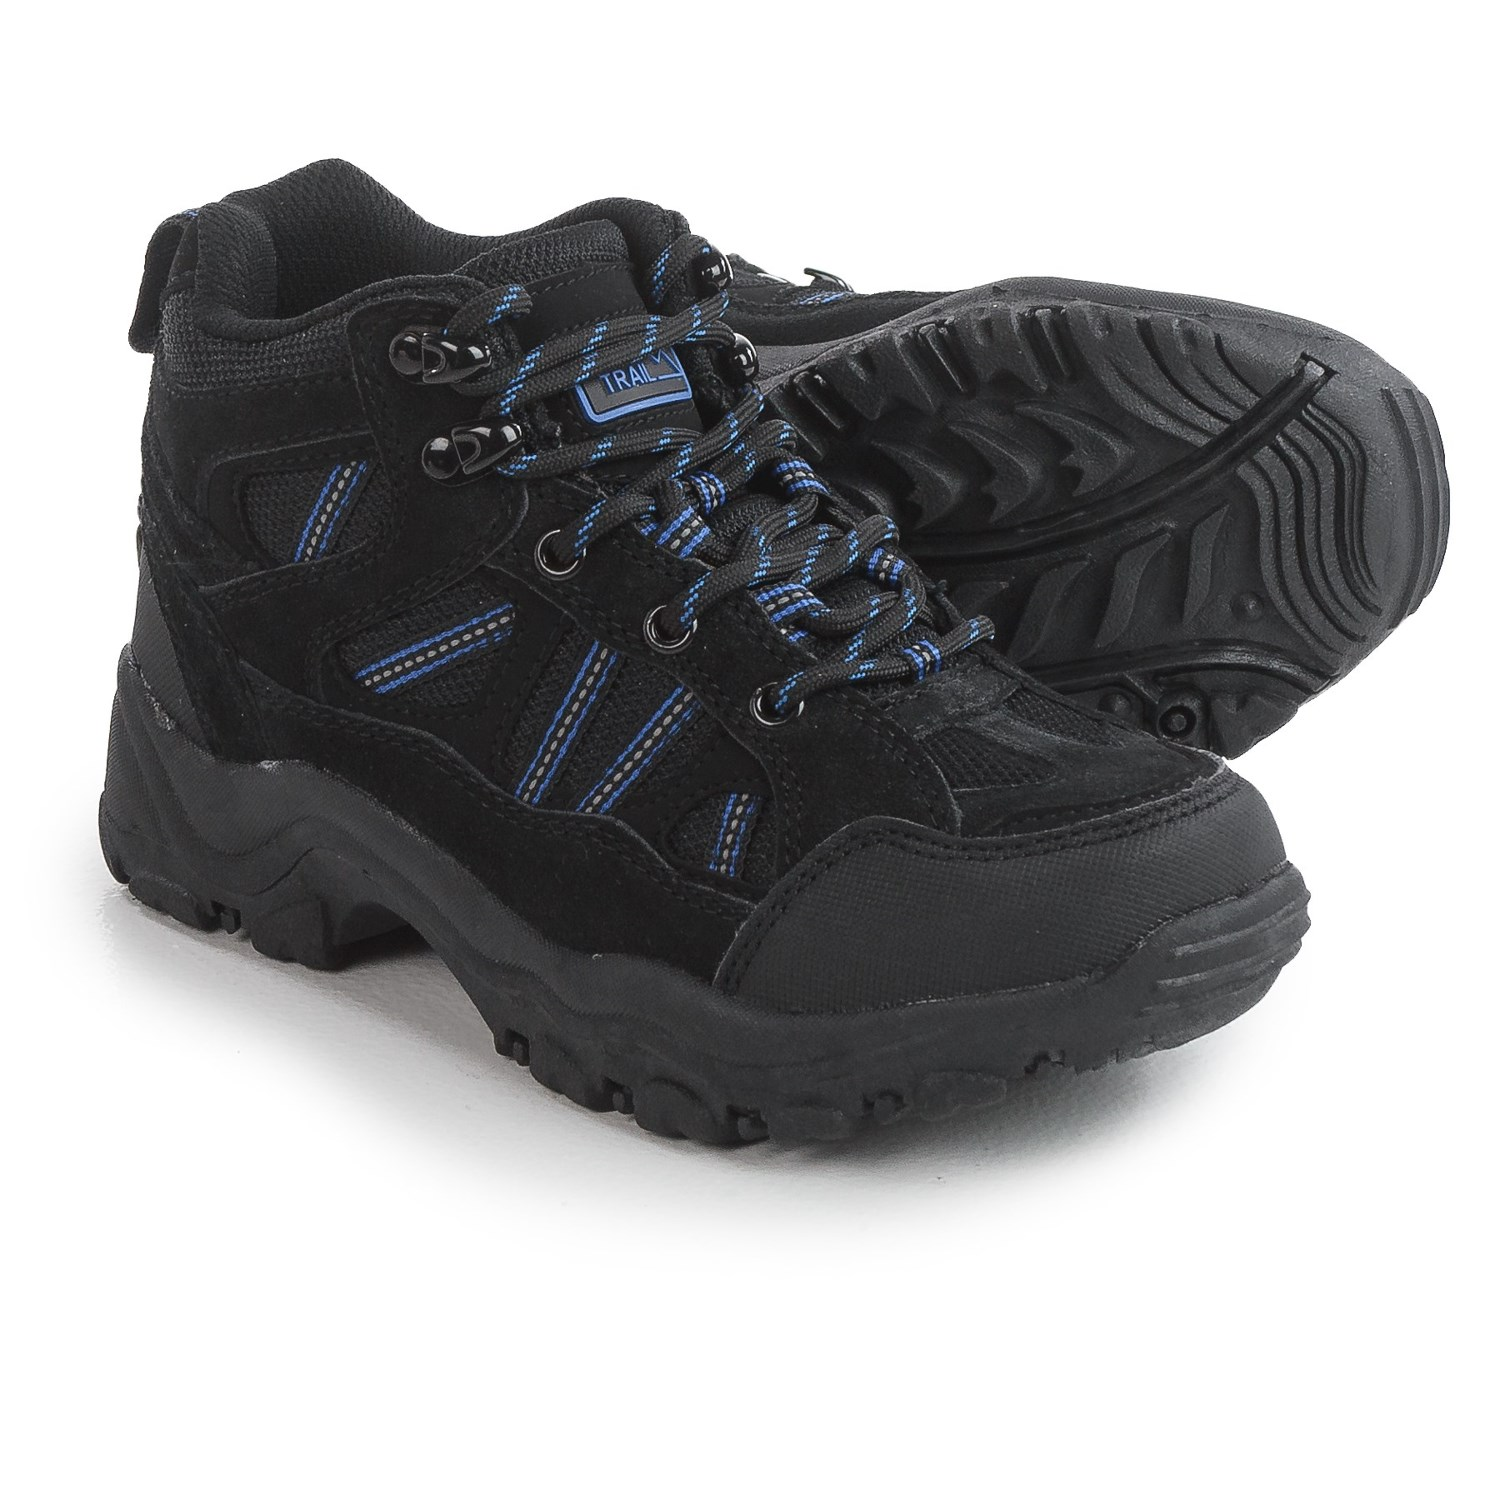 Nord Trail Mt. Hunter High Hiking Boots (For Boys) - Save 37%